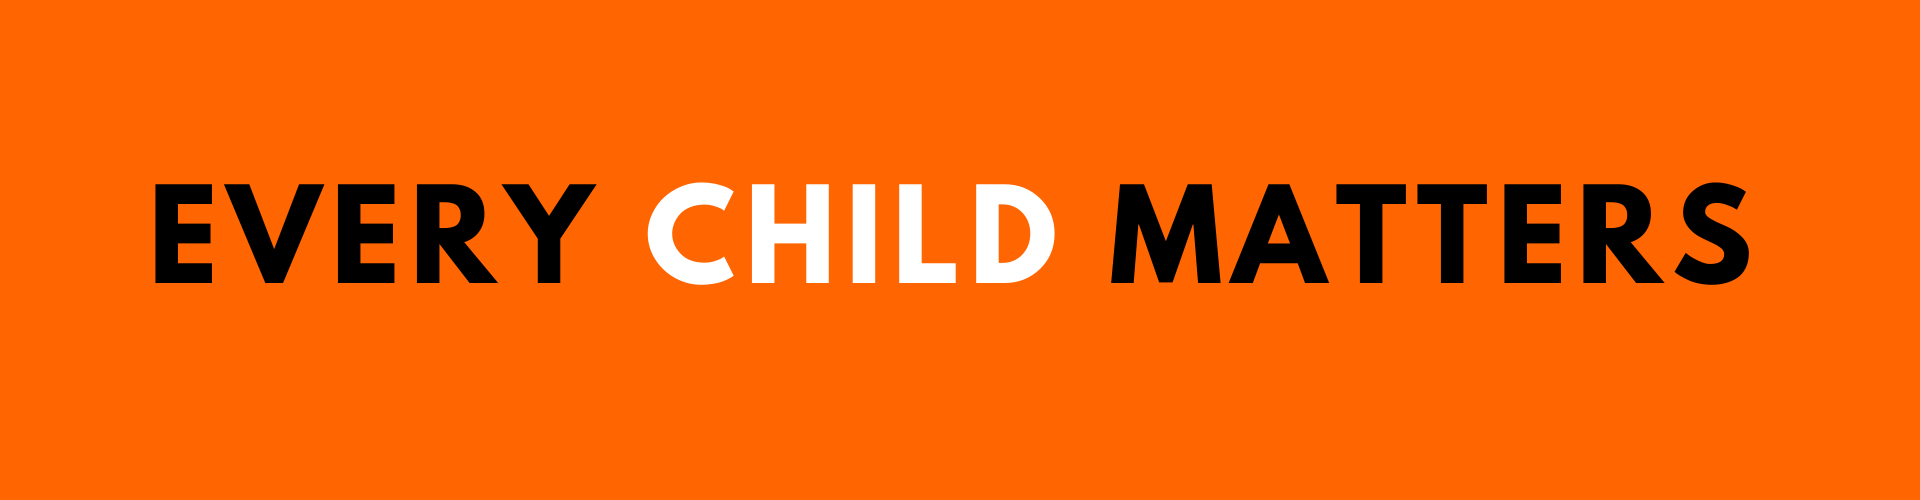 Every Child Matters (text on orange background)